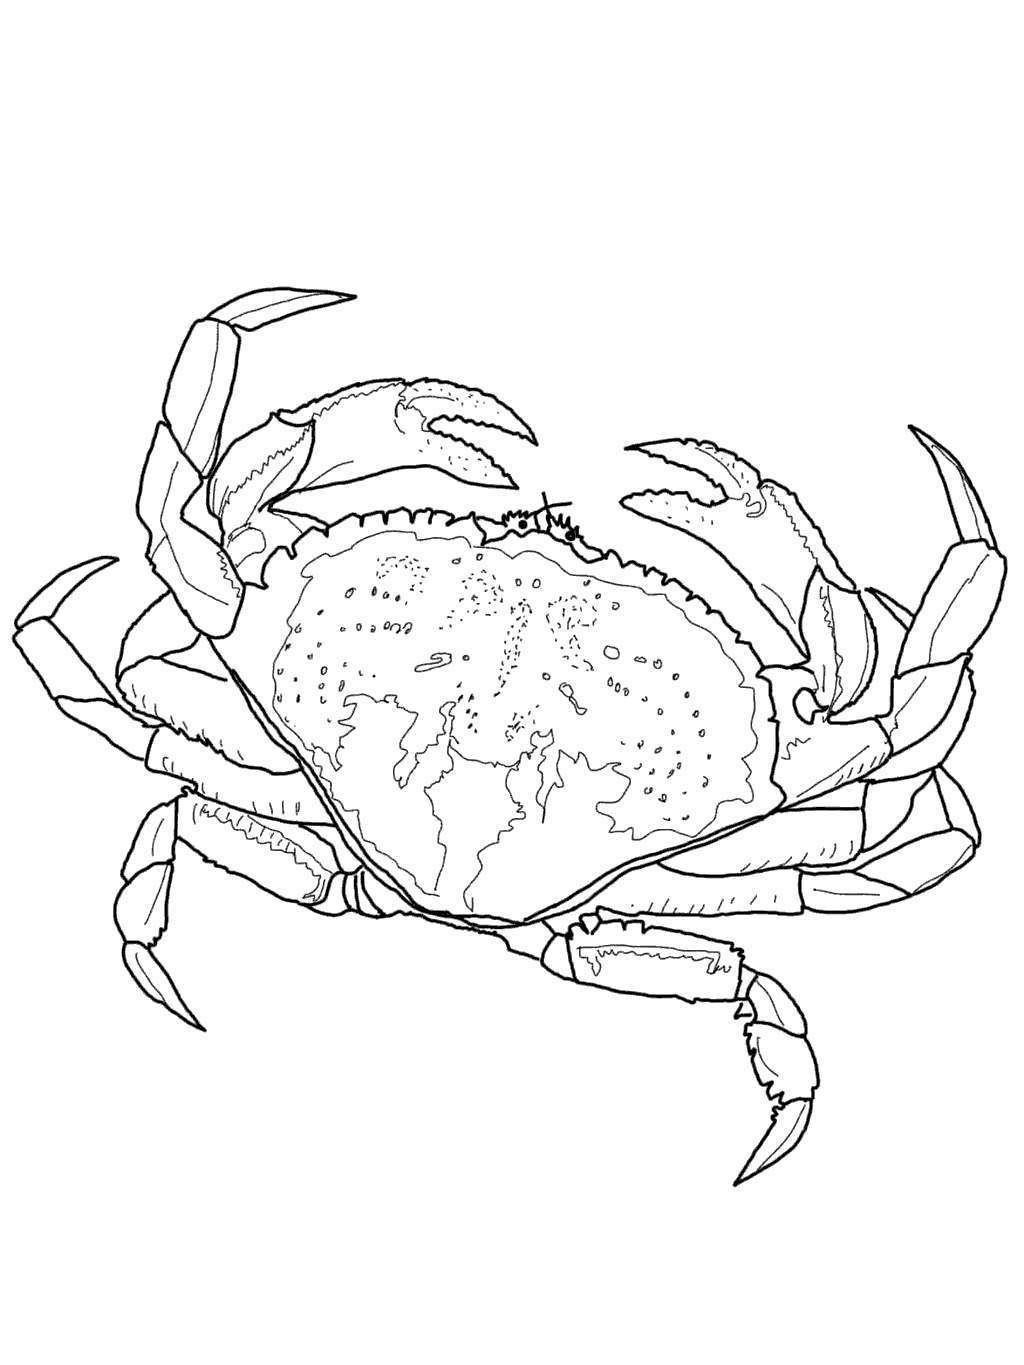 Crab Coloring Pages 45 Crab Coloring Page Printable Hermit Crab Coloring Pages For Kids Entitlementtrap Com In 2020 Coloring Pages Crab Art Animal Coloring Pages